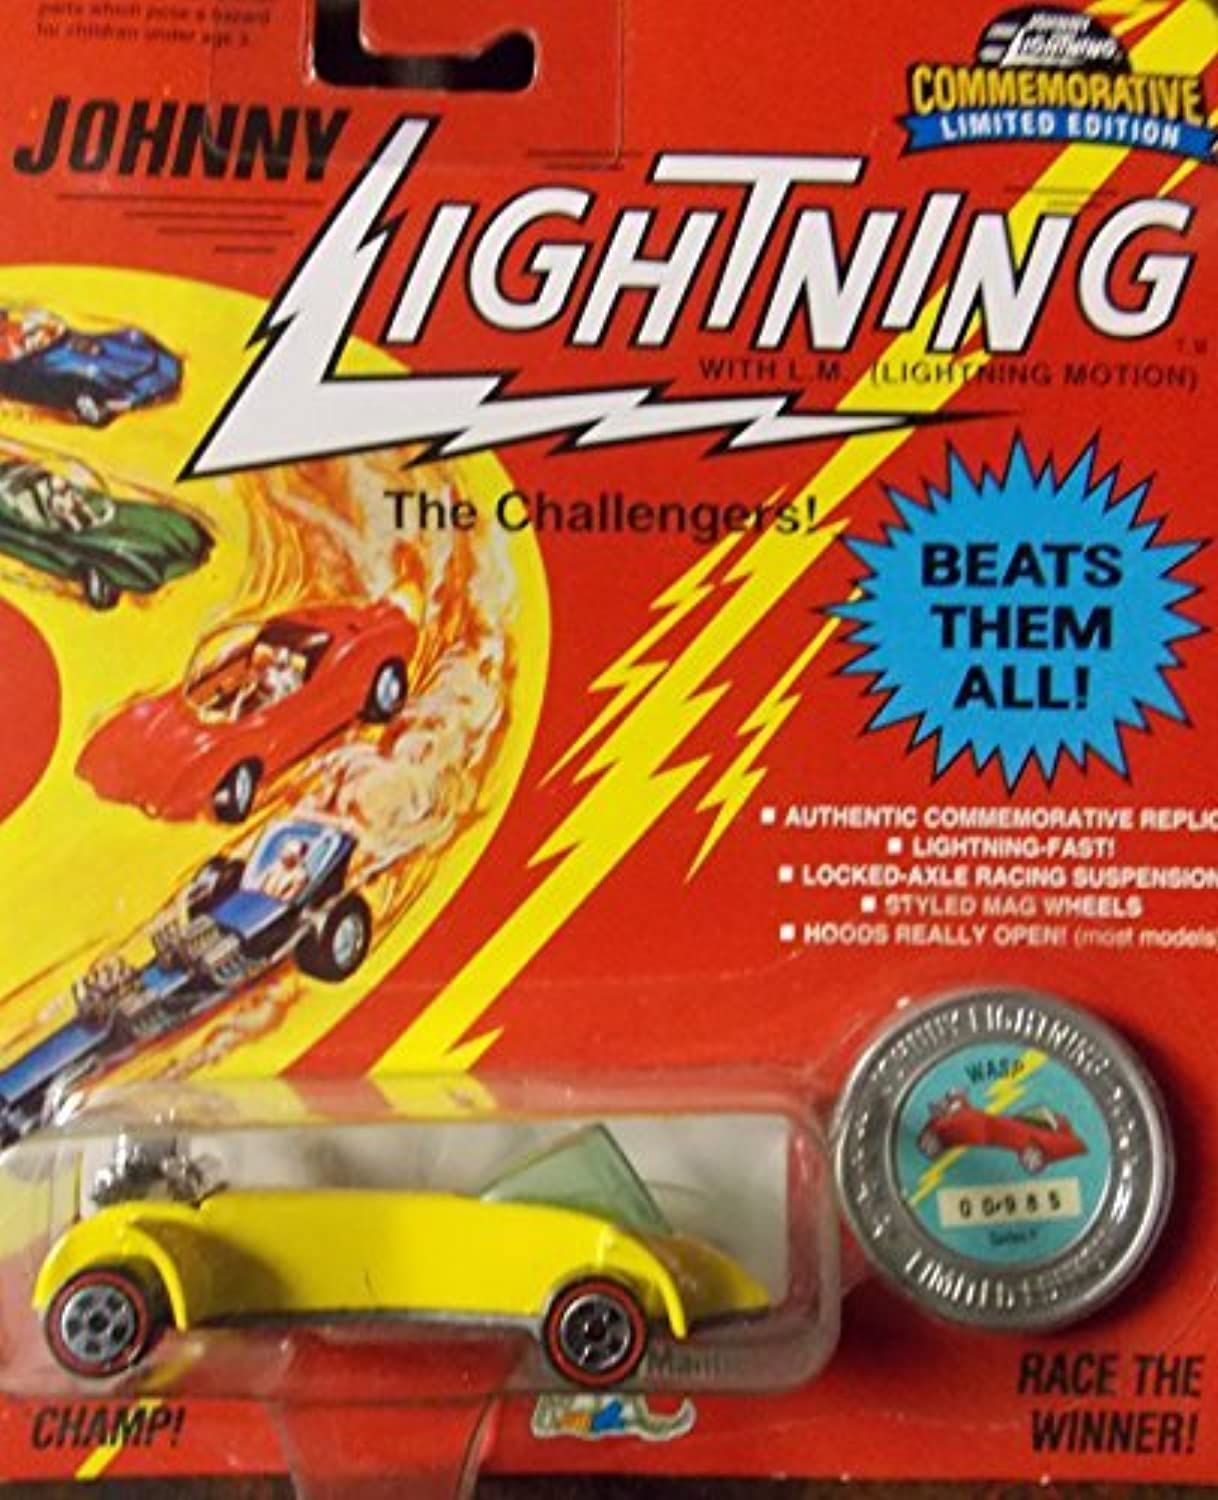 Johnny Lightning The Challengers Limited Edition Classic WASP by Johnny Lightning